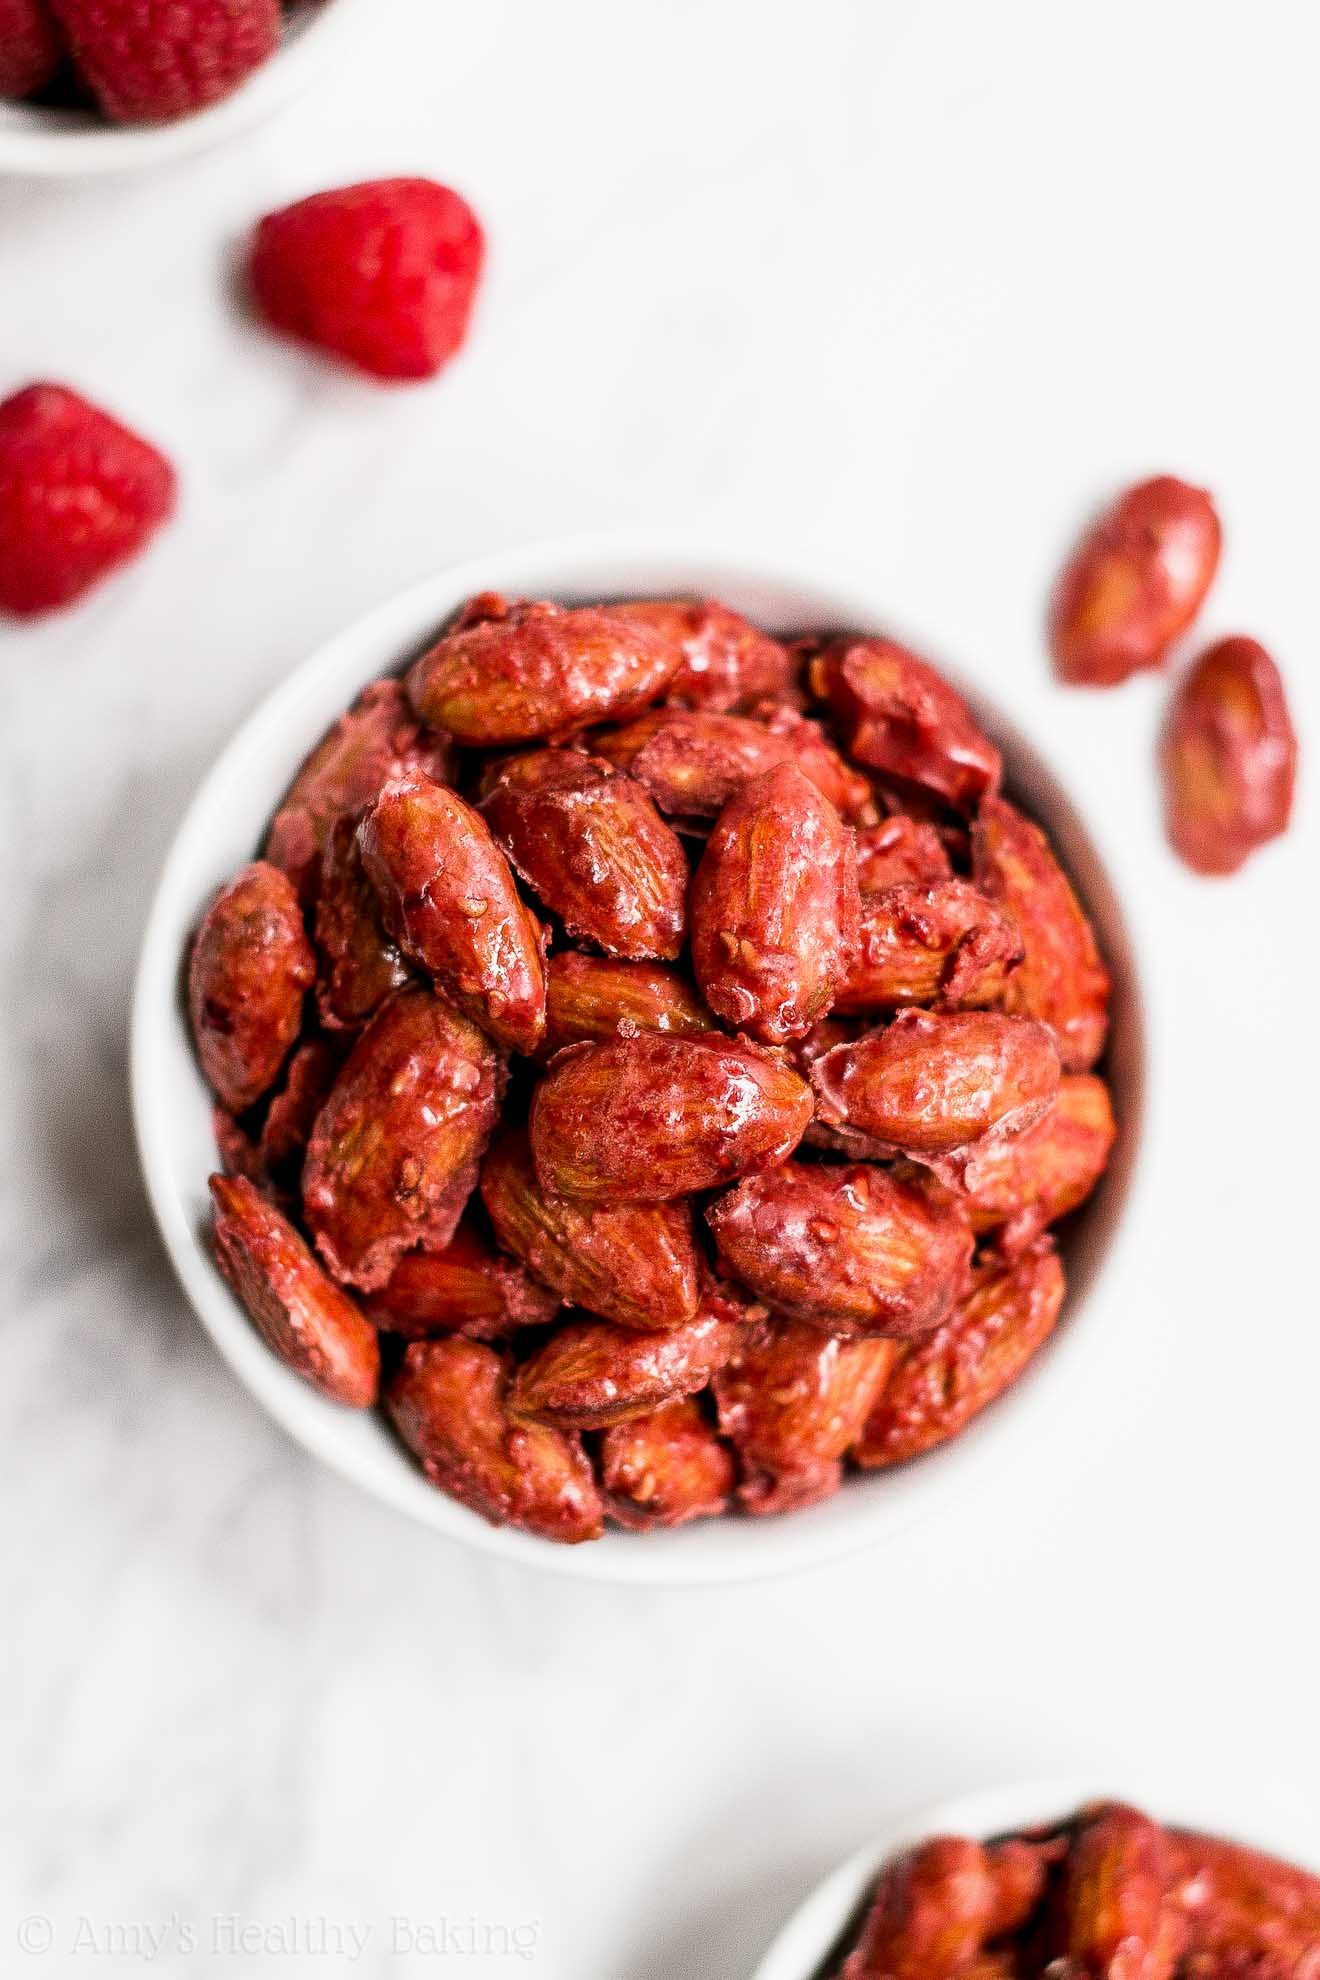 Healthy Low Carb Stovetop Raspberry Glazed Almonds